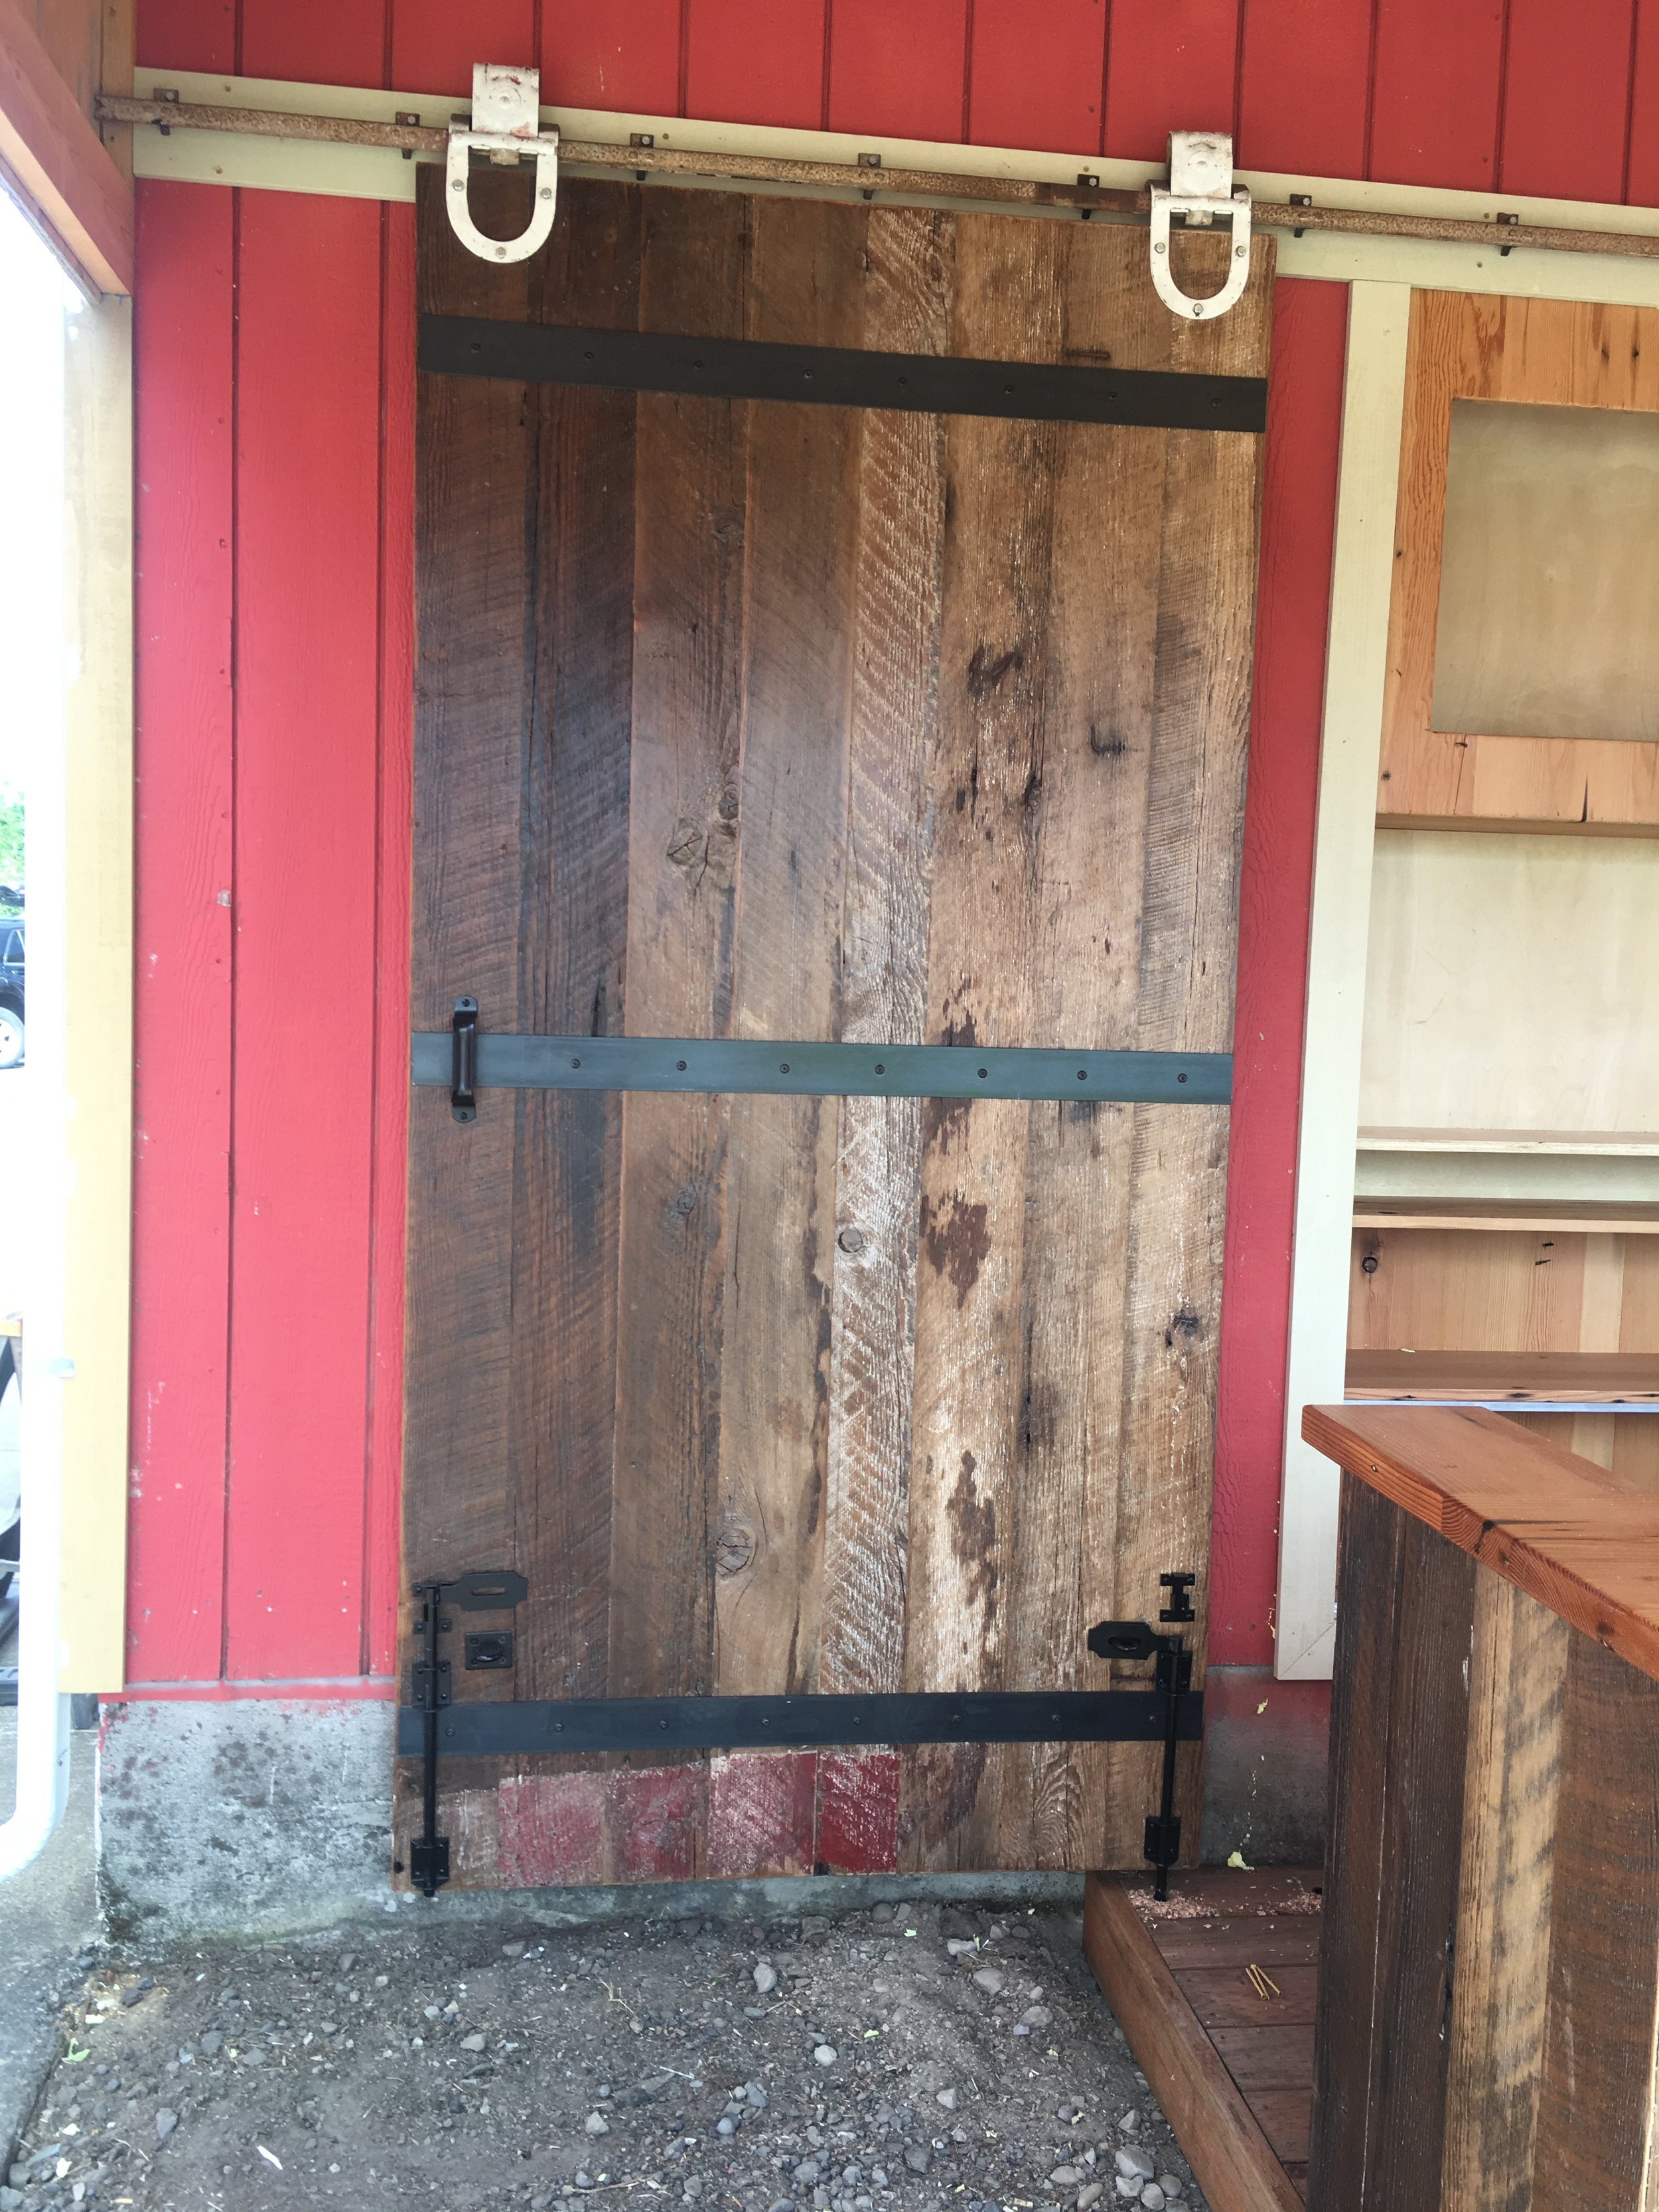 Barn door using reclaimed wood, track and rollers from the property.